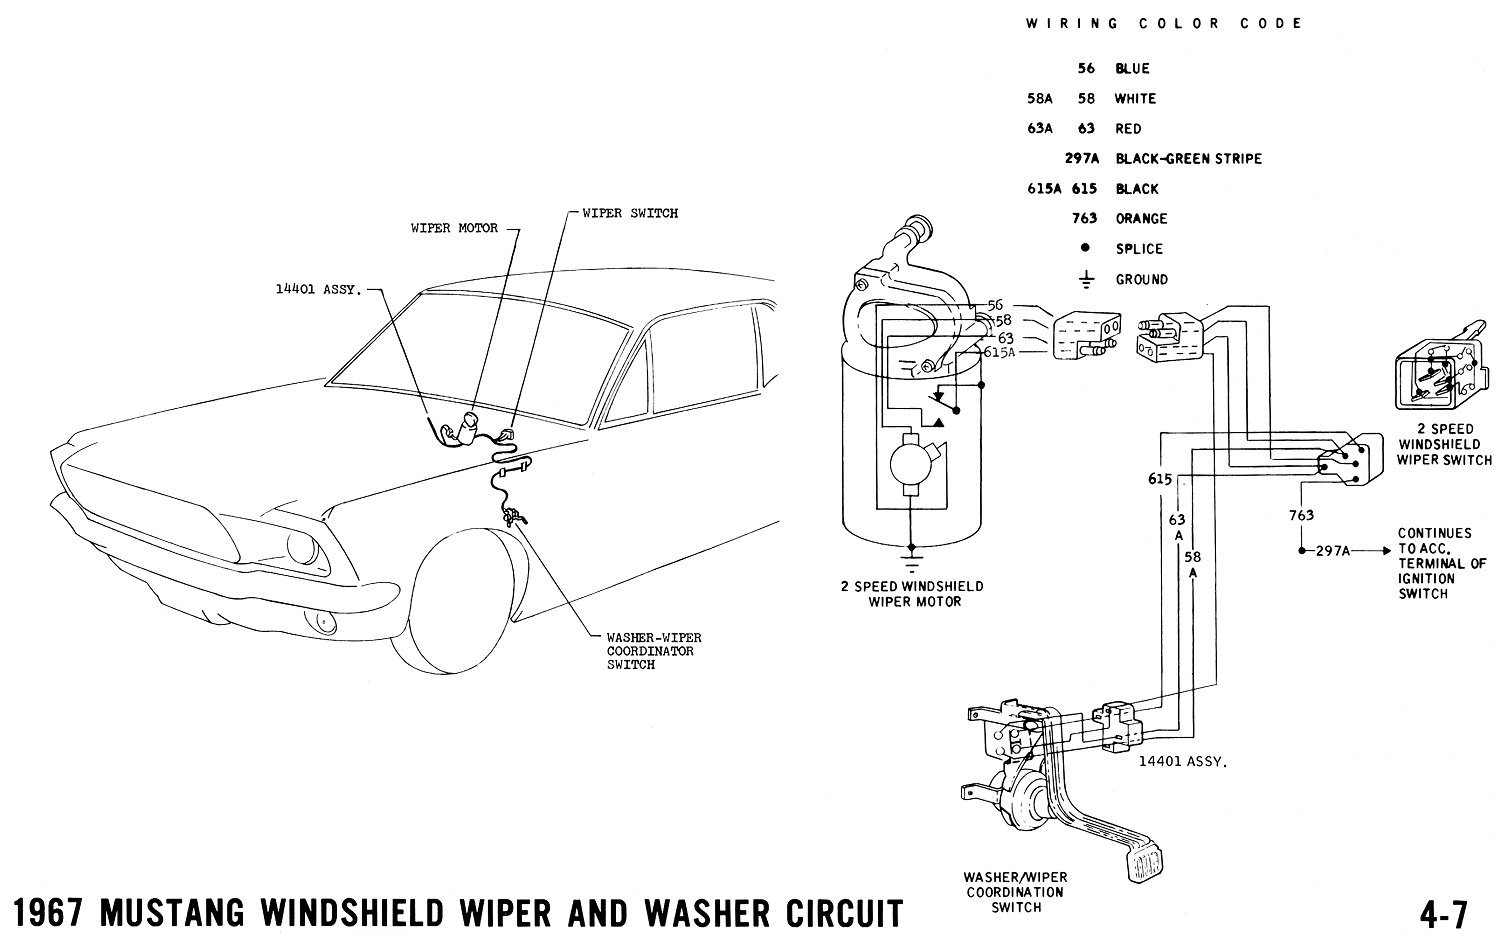 1967 Mustang Wiper Motor Replacement